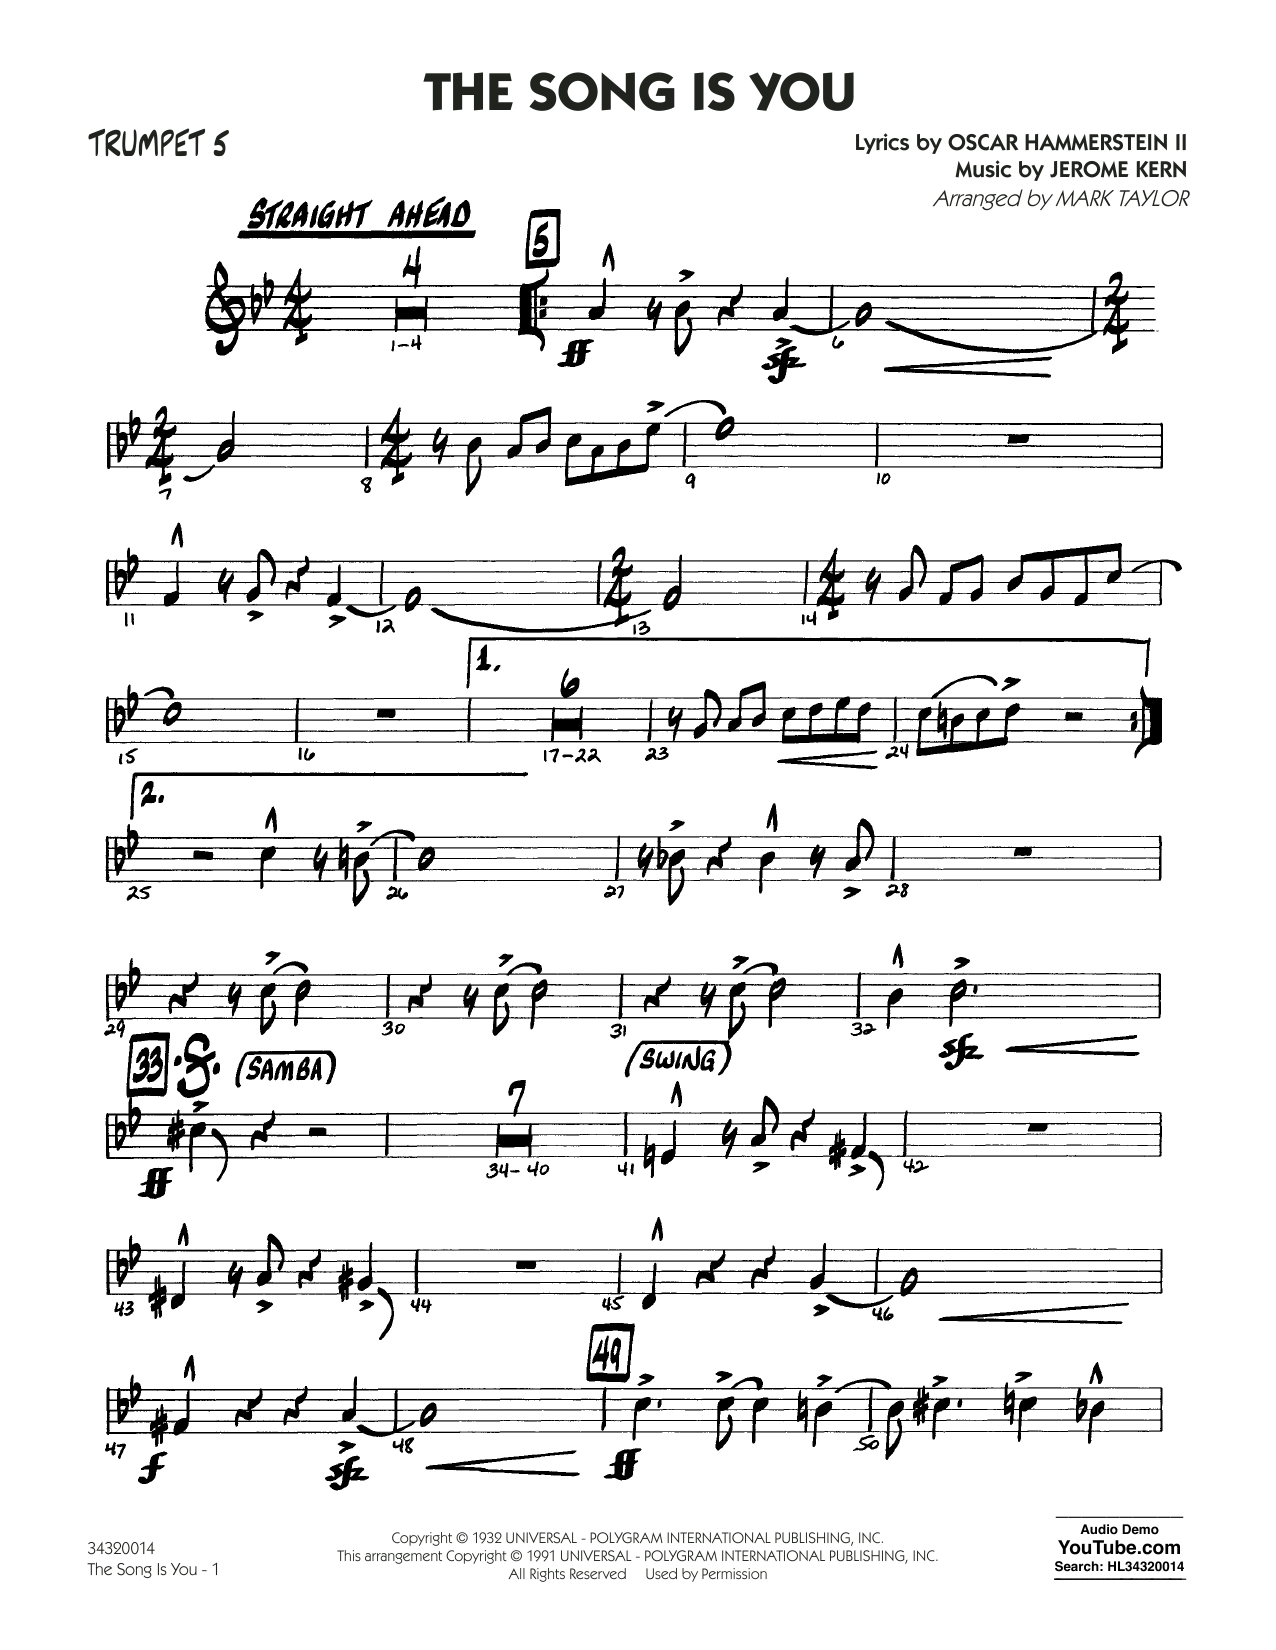 Mark Taylor The Song Is You - Trumpet 5 sheet music notes and chords. Download Printable PDF.